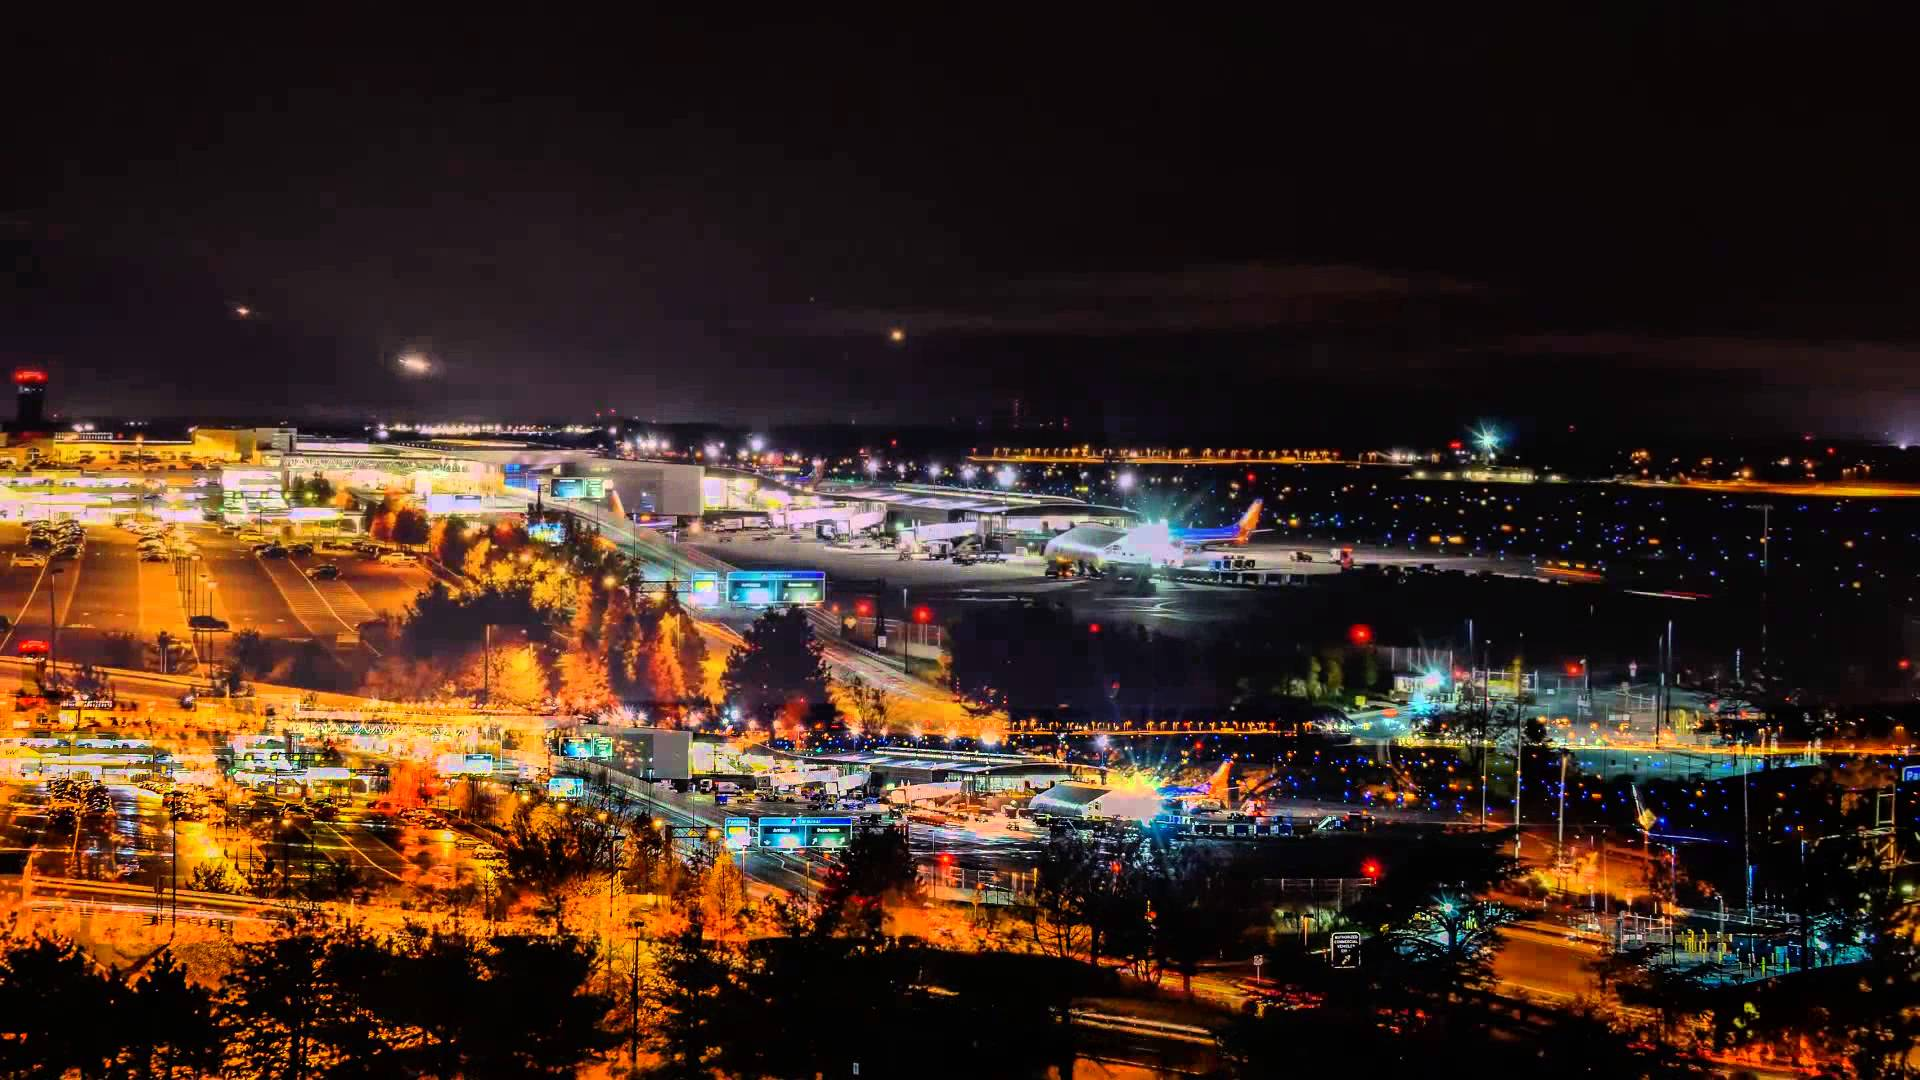 night airport wallpapers high quality download free